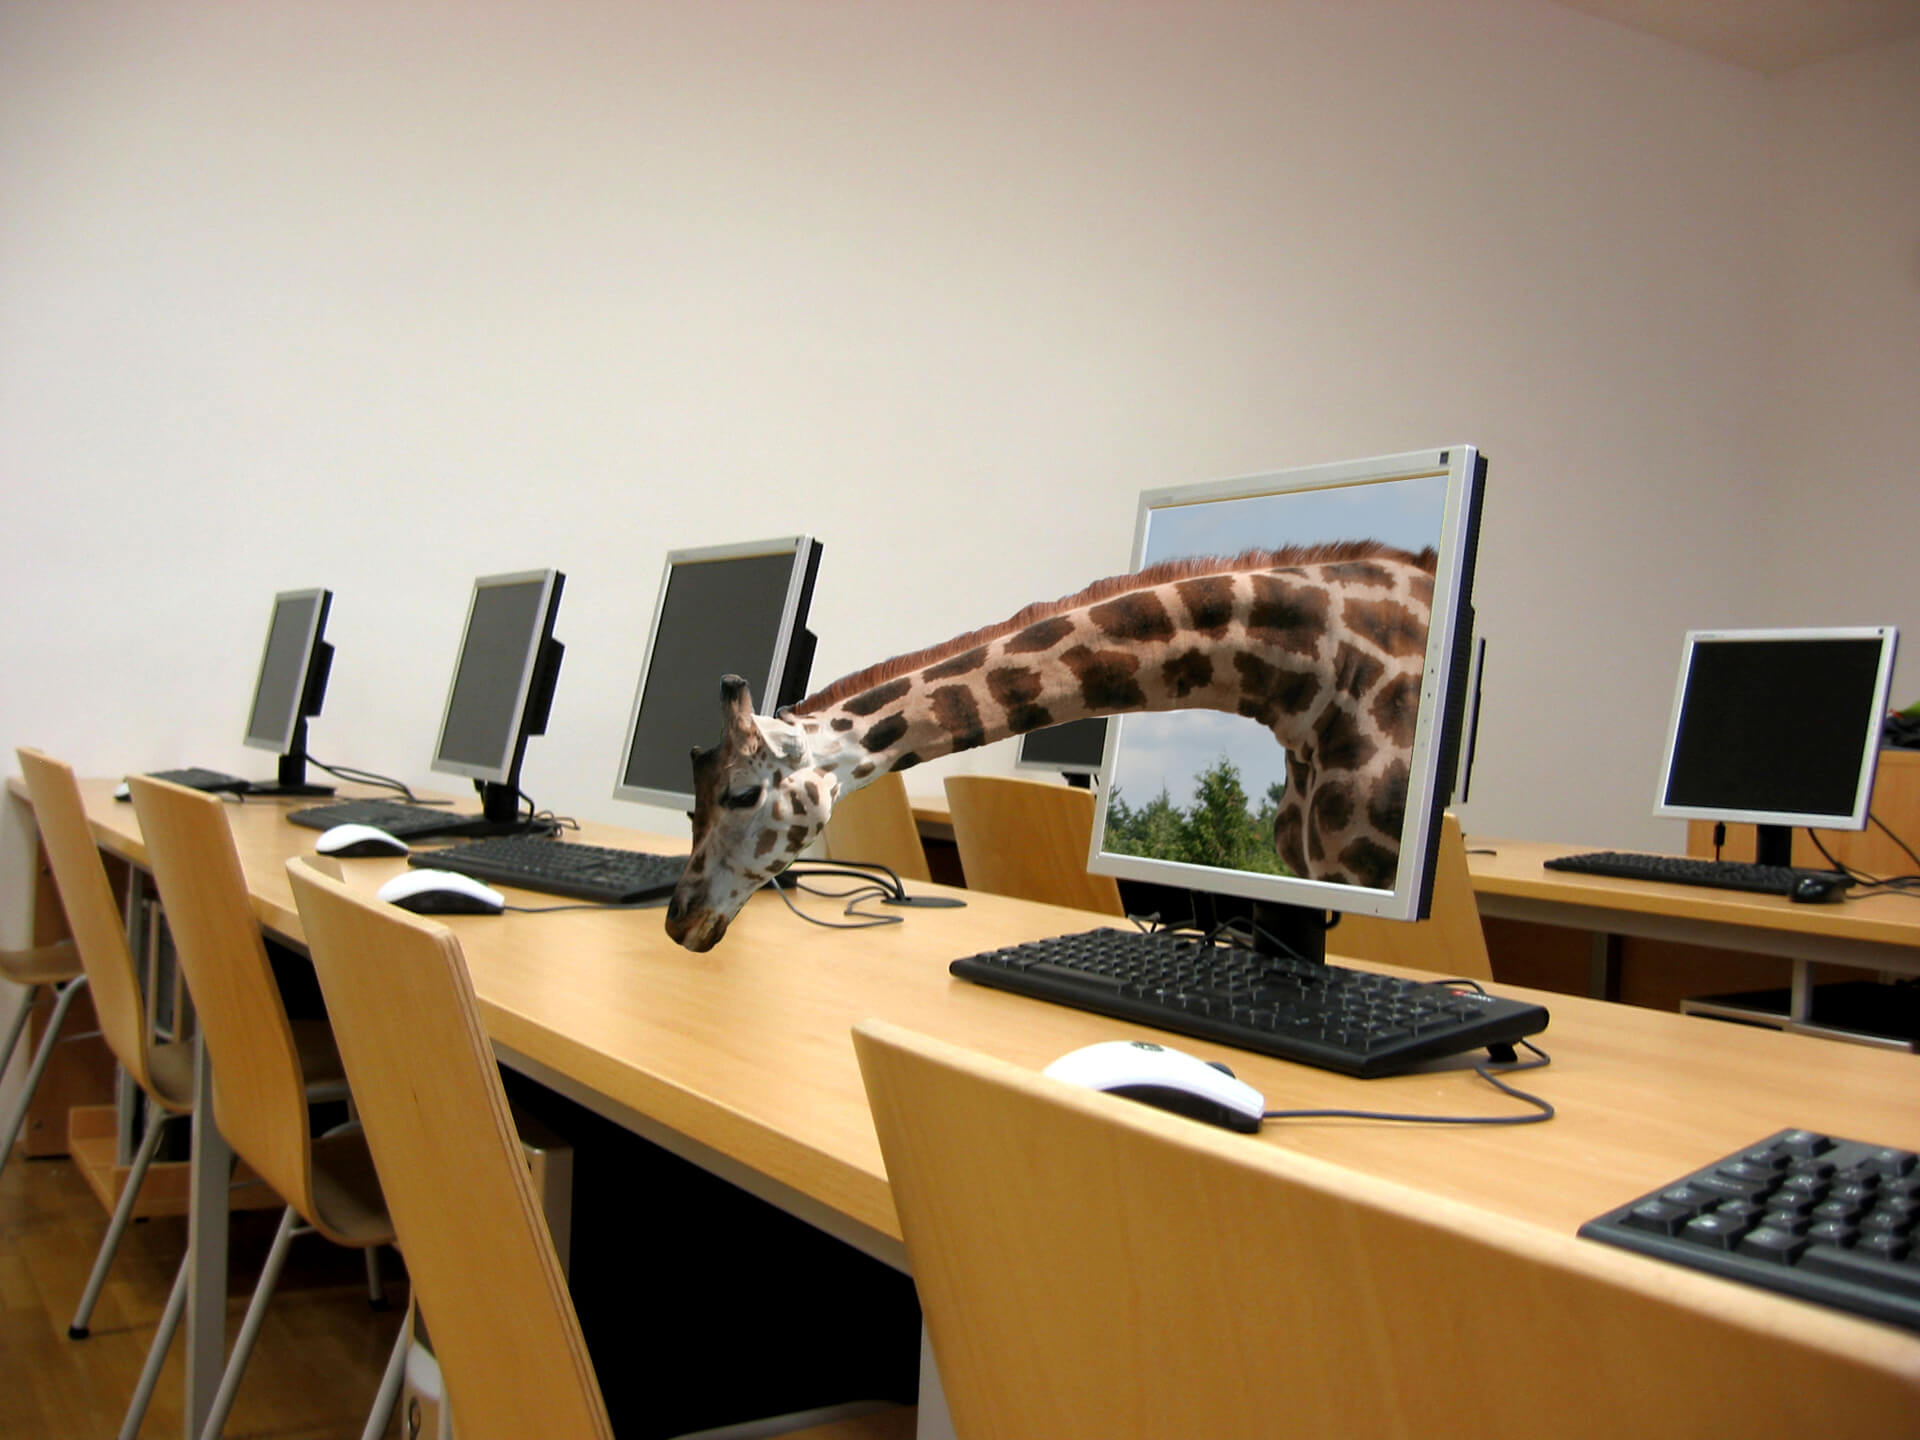 A computer lab with a giraffe coming out of one of the screens